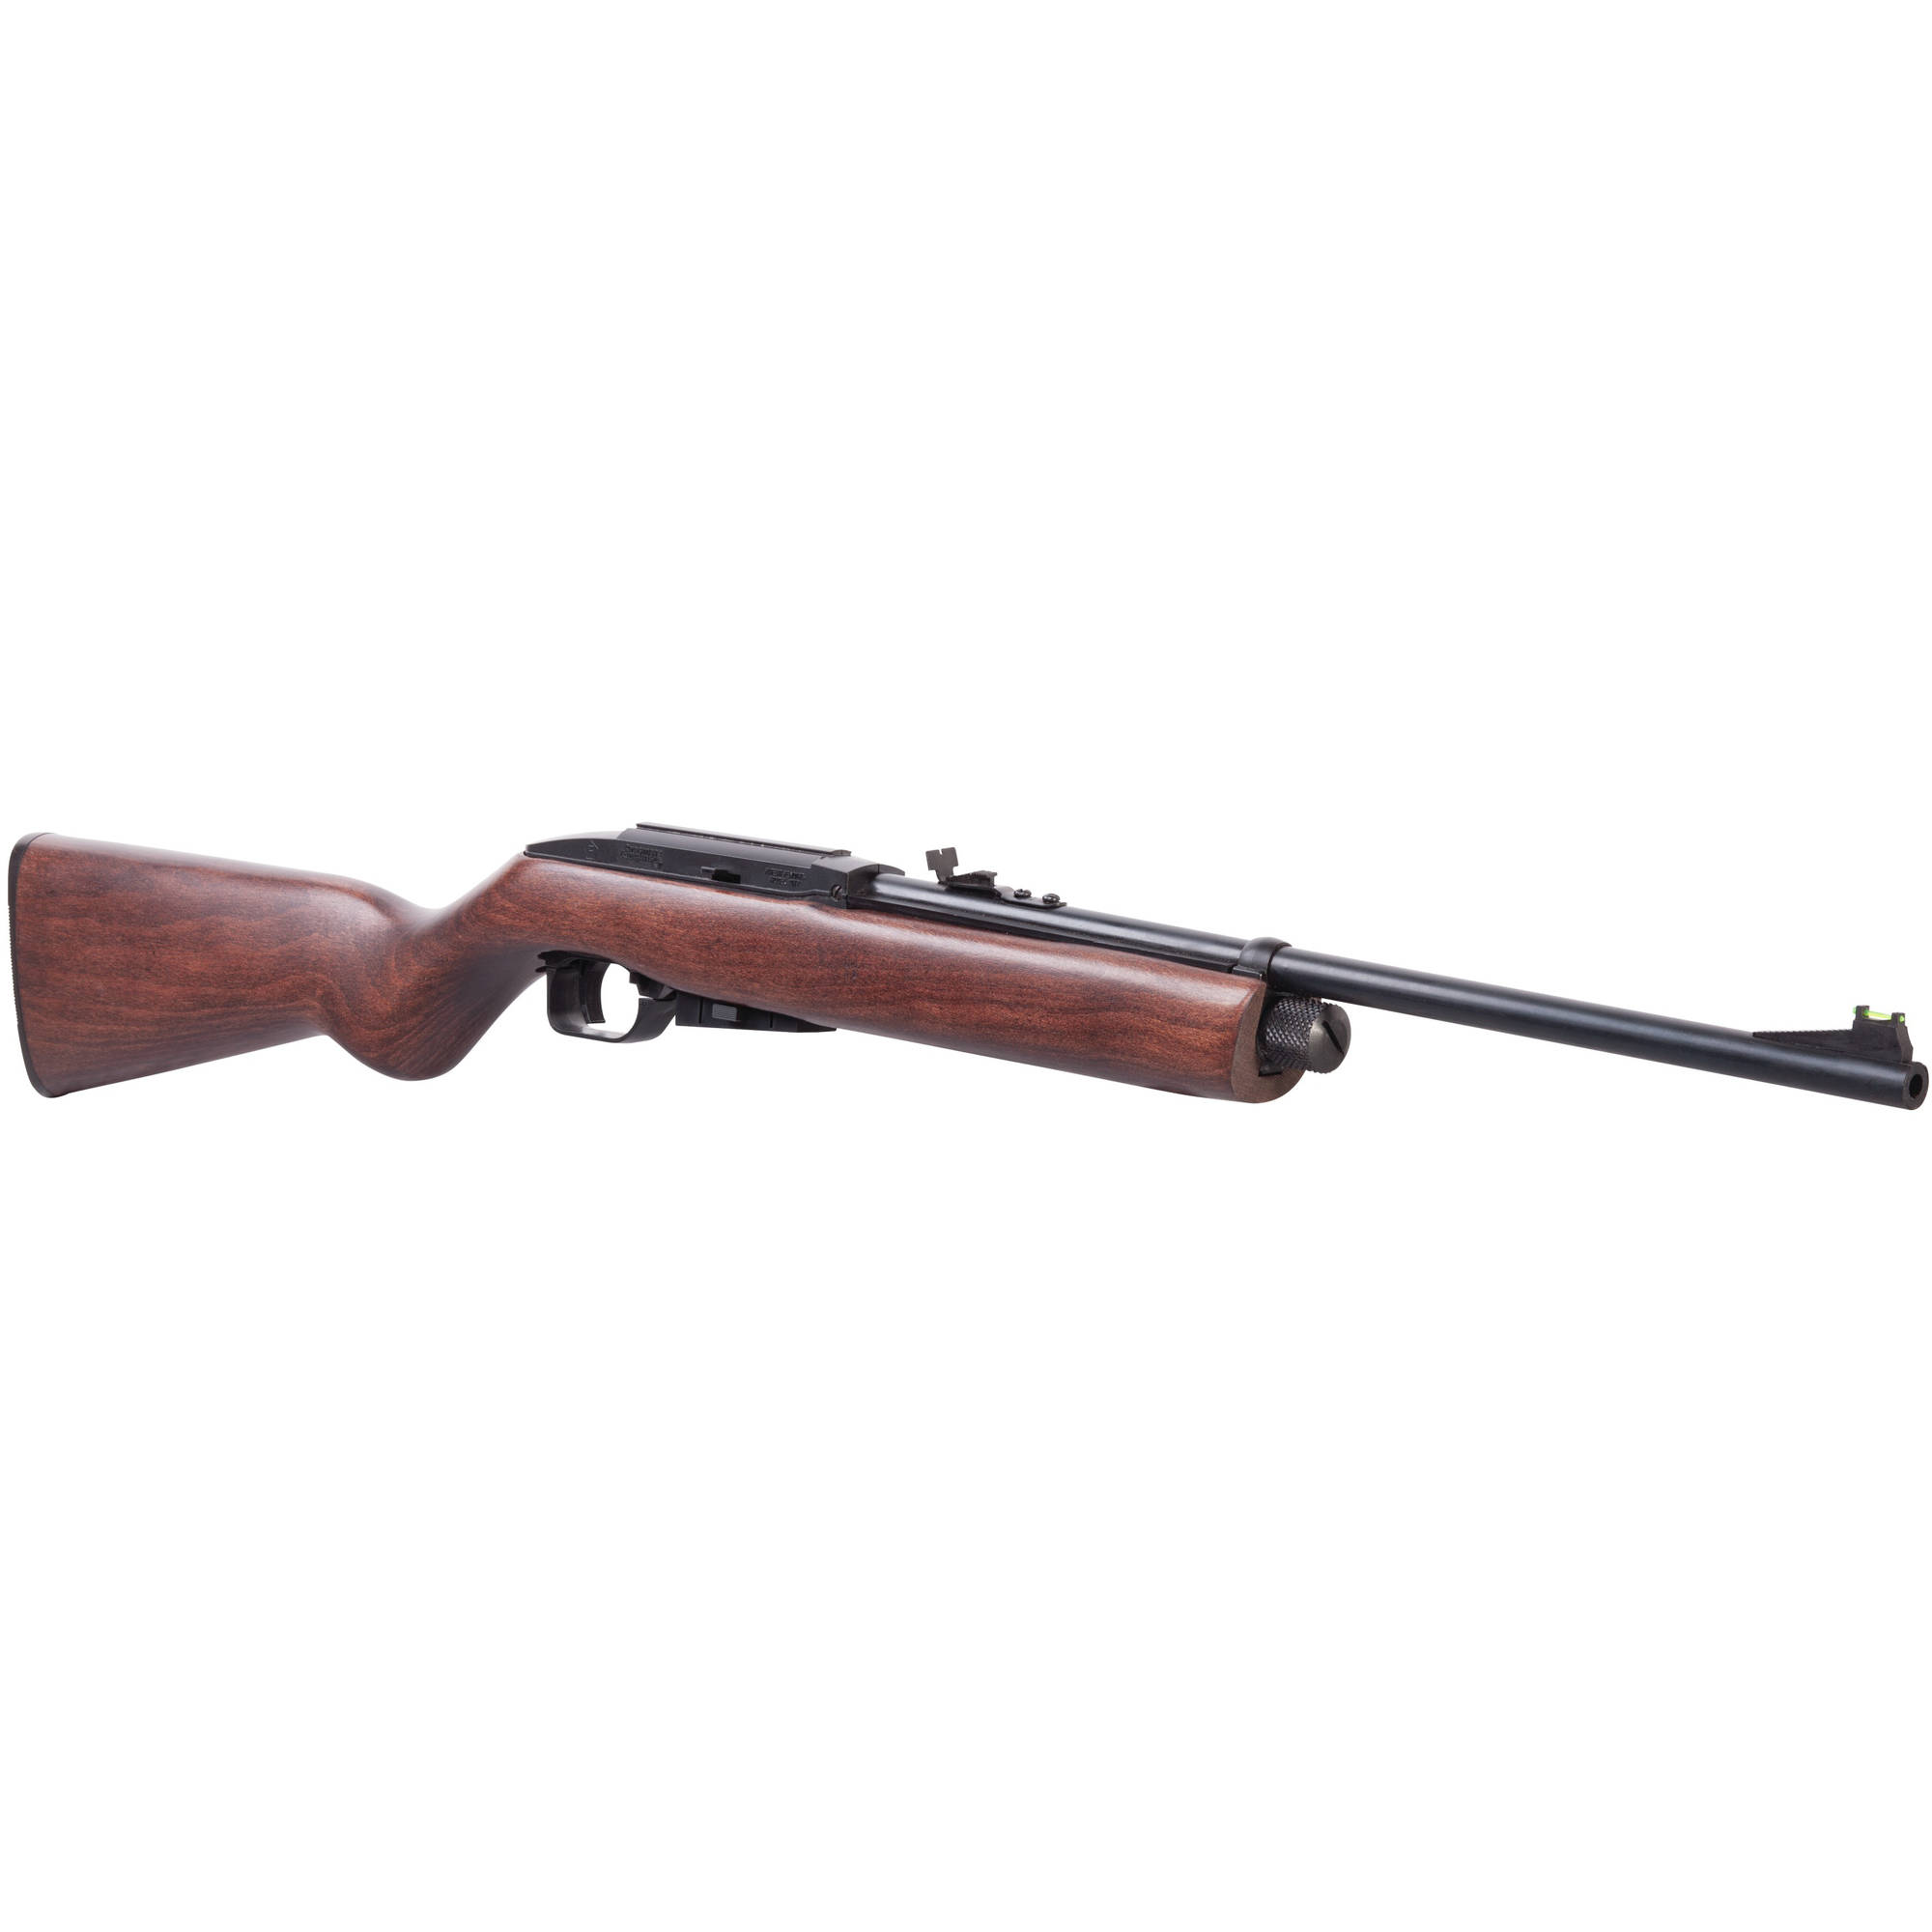 Crosman 1077 RepeatAir .177 Caliber CO2 Semi-Auto Air Rifle- Wood stock by Crosman